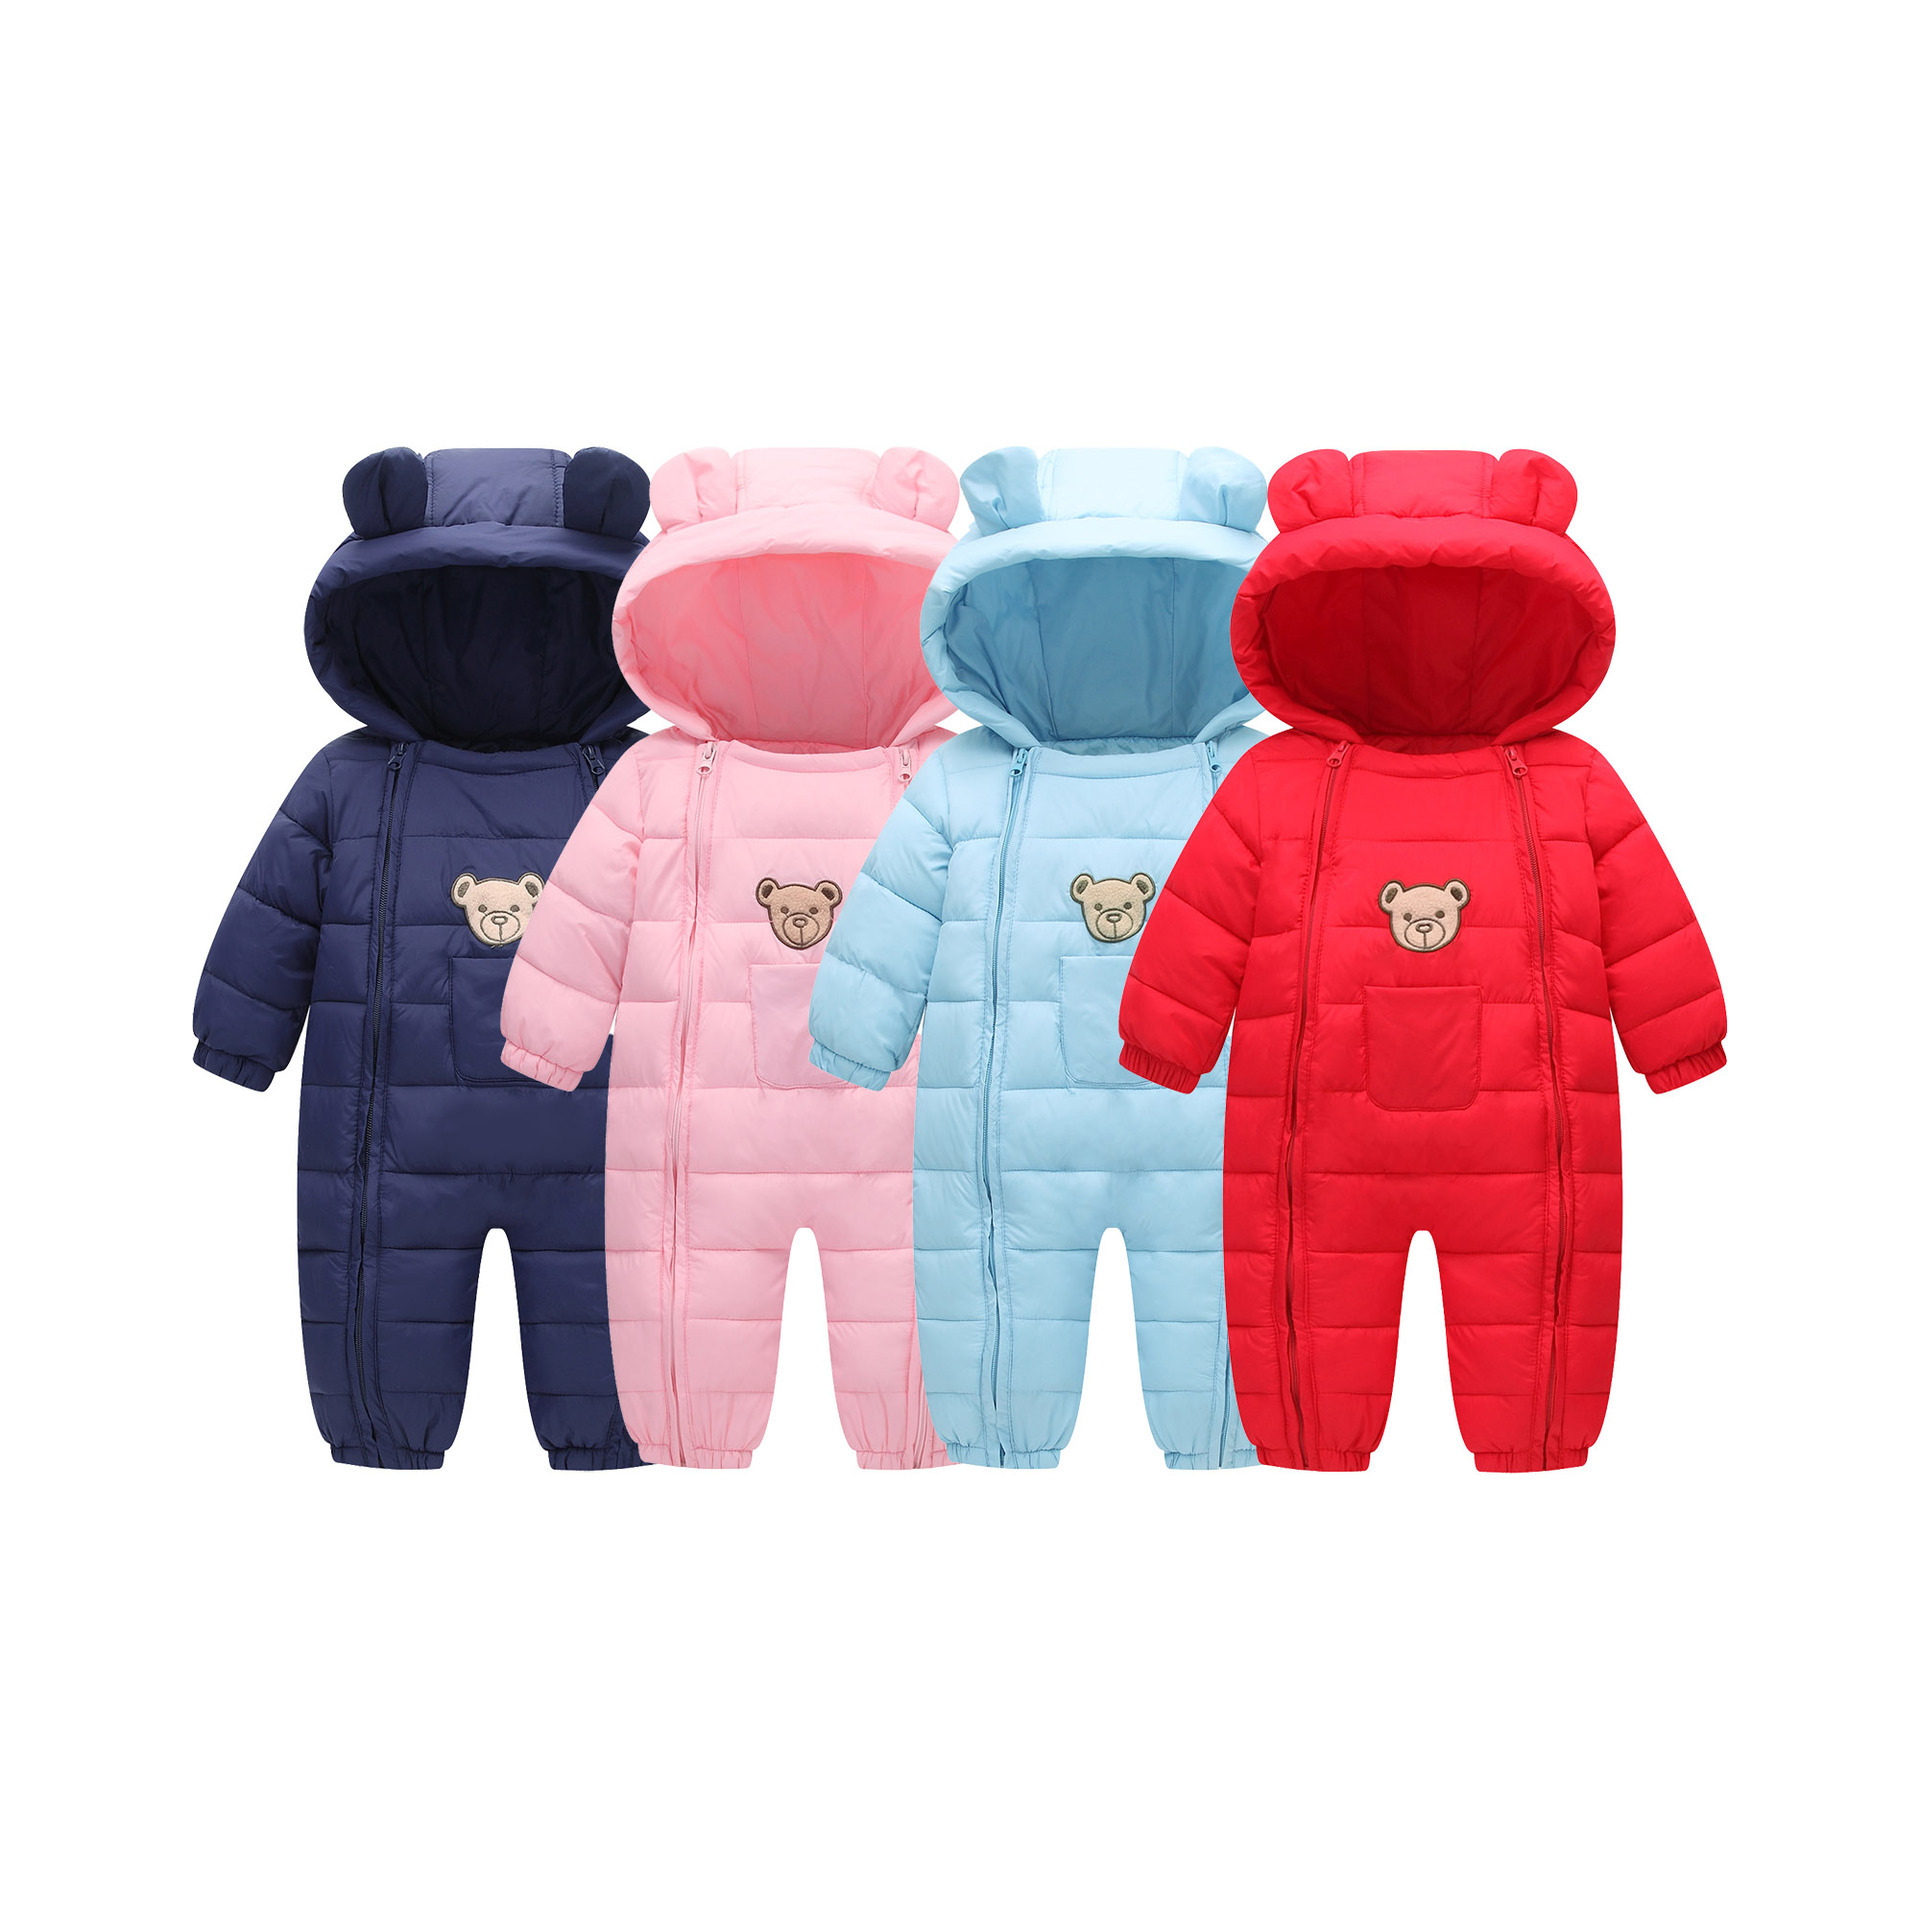 2018 New Baby Down Cotton Rompers Children Winter Warm Infant Snowsuit Kid Jumpsuit Boys Costume mioigee 2017 new down baby rompers winter outdoor boy costume girls warm infant snowsuit kid jumpsuit children romper clothing